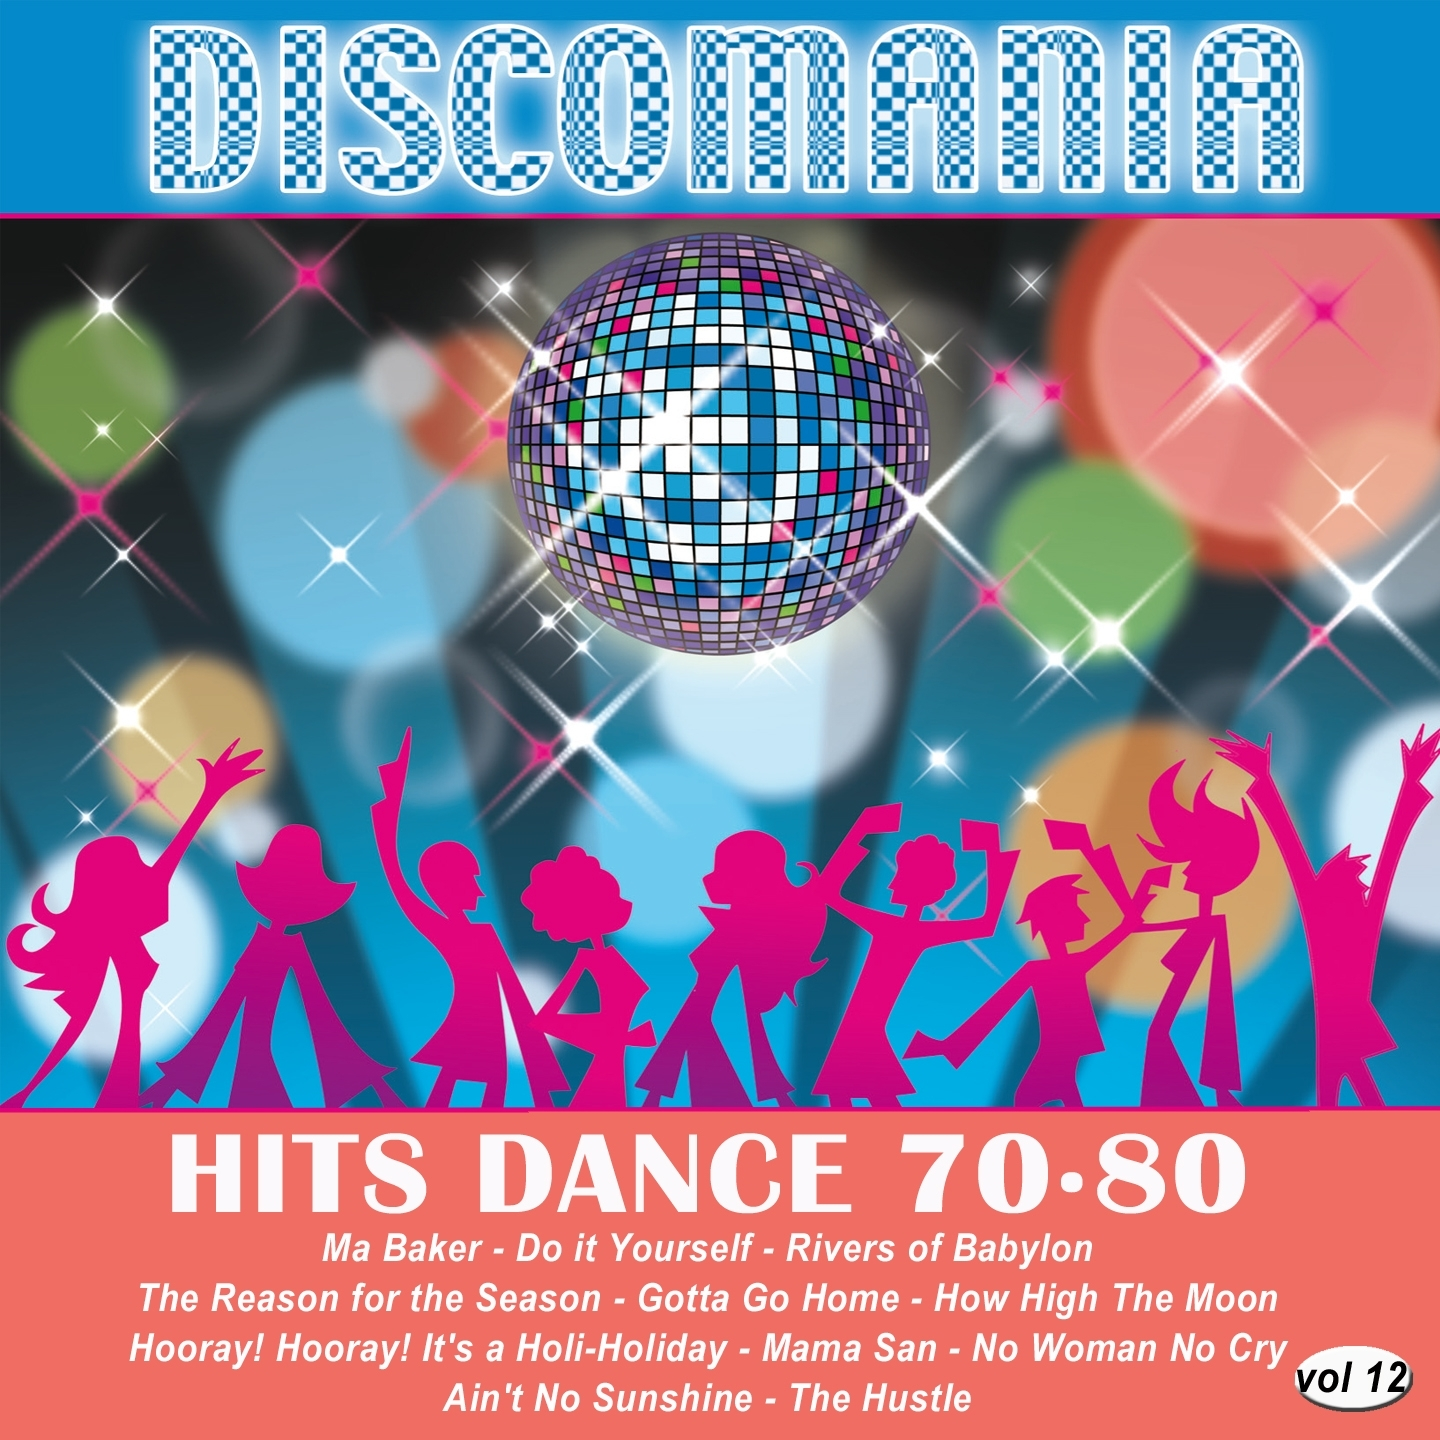 Discomania: Hits Dance 70-80, Vol. 12